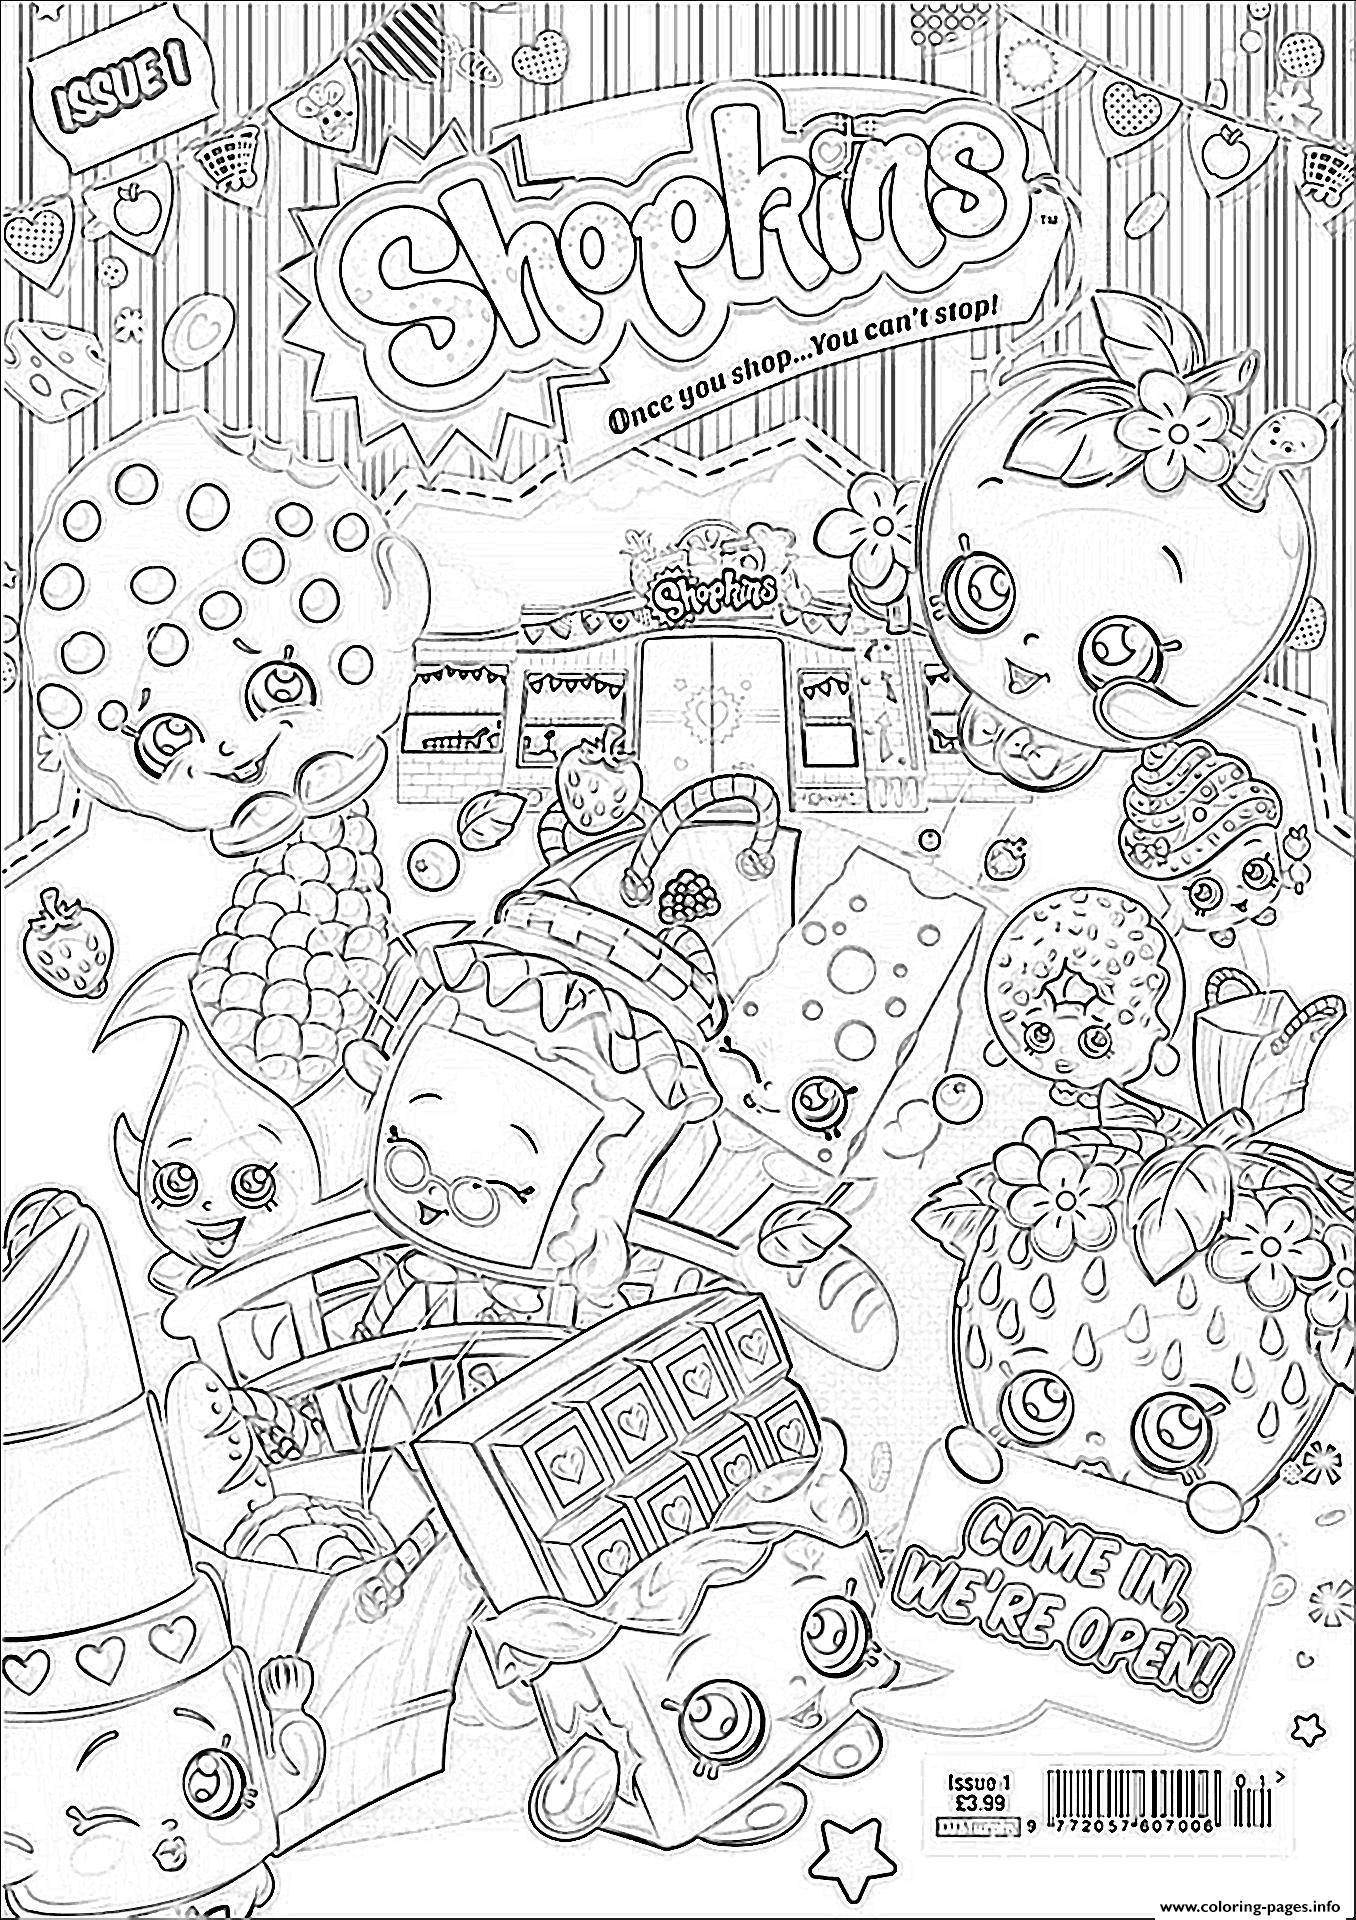 Shopkins We Are Open coloring pages